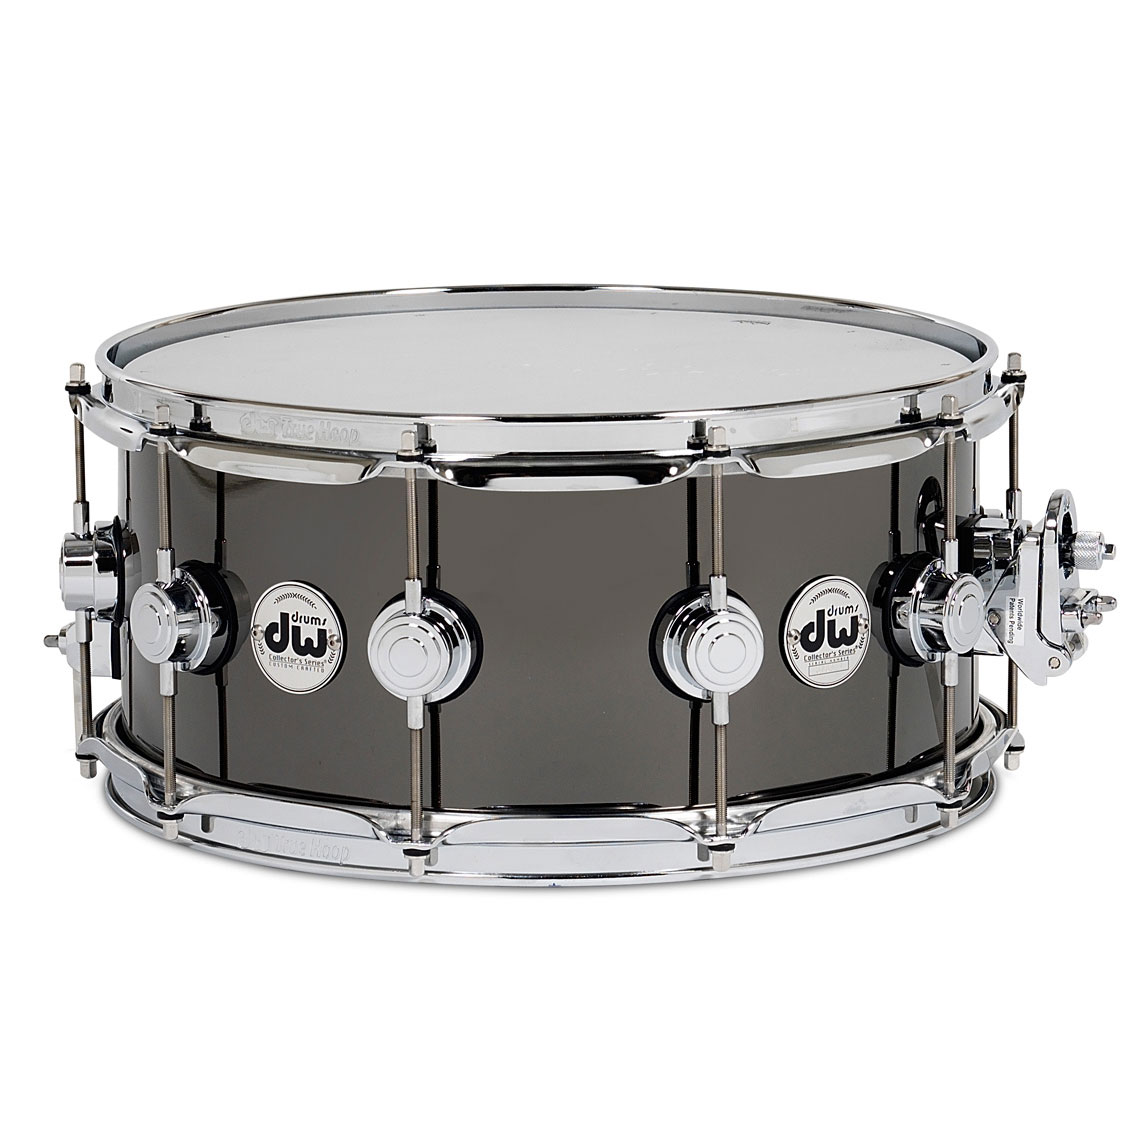 "DW 6.5"" x 14"" Black Nickel over Thin Brass Snare Drum"